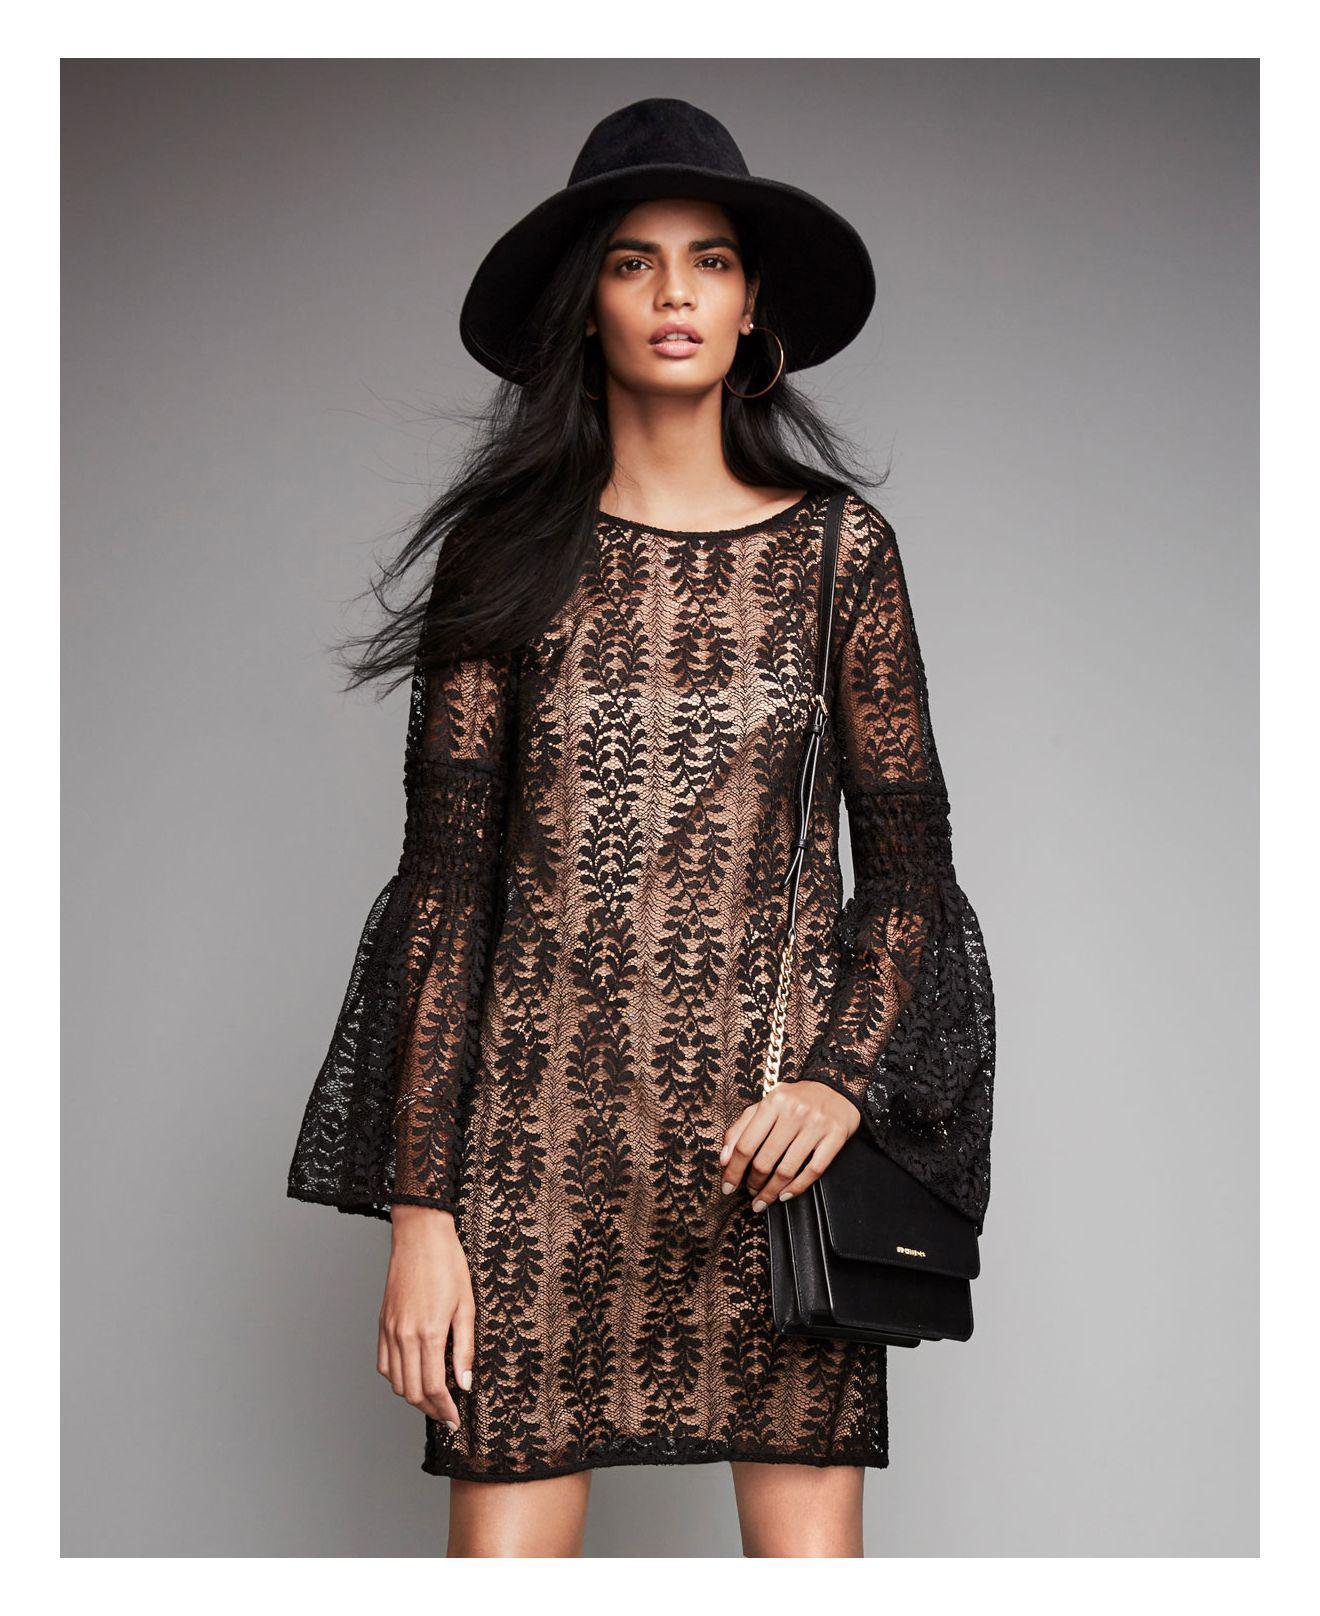 4a9bd445ade Lyst - Michael Kors Lace Bell-sleeve Dress in Black